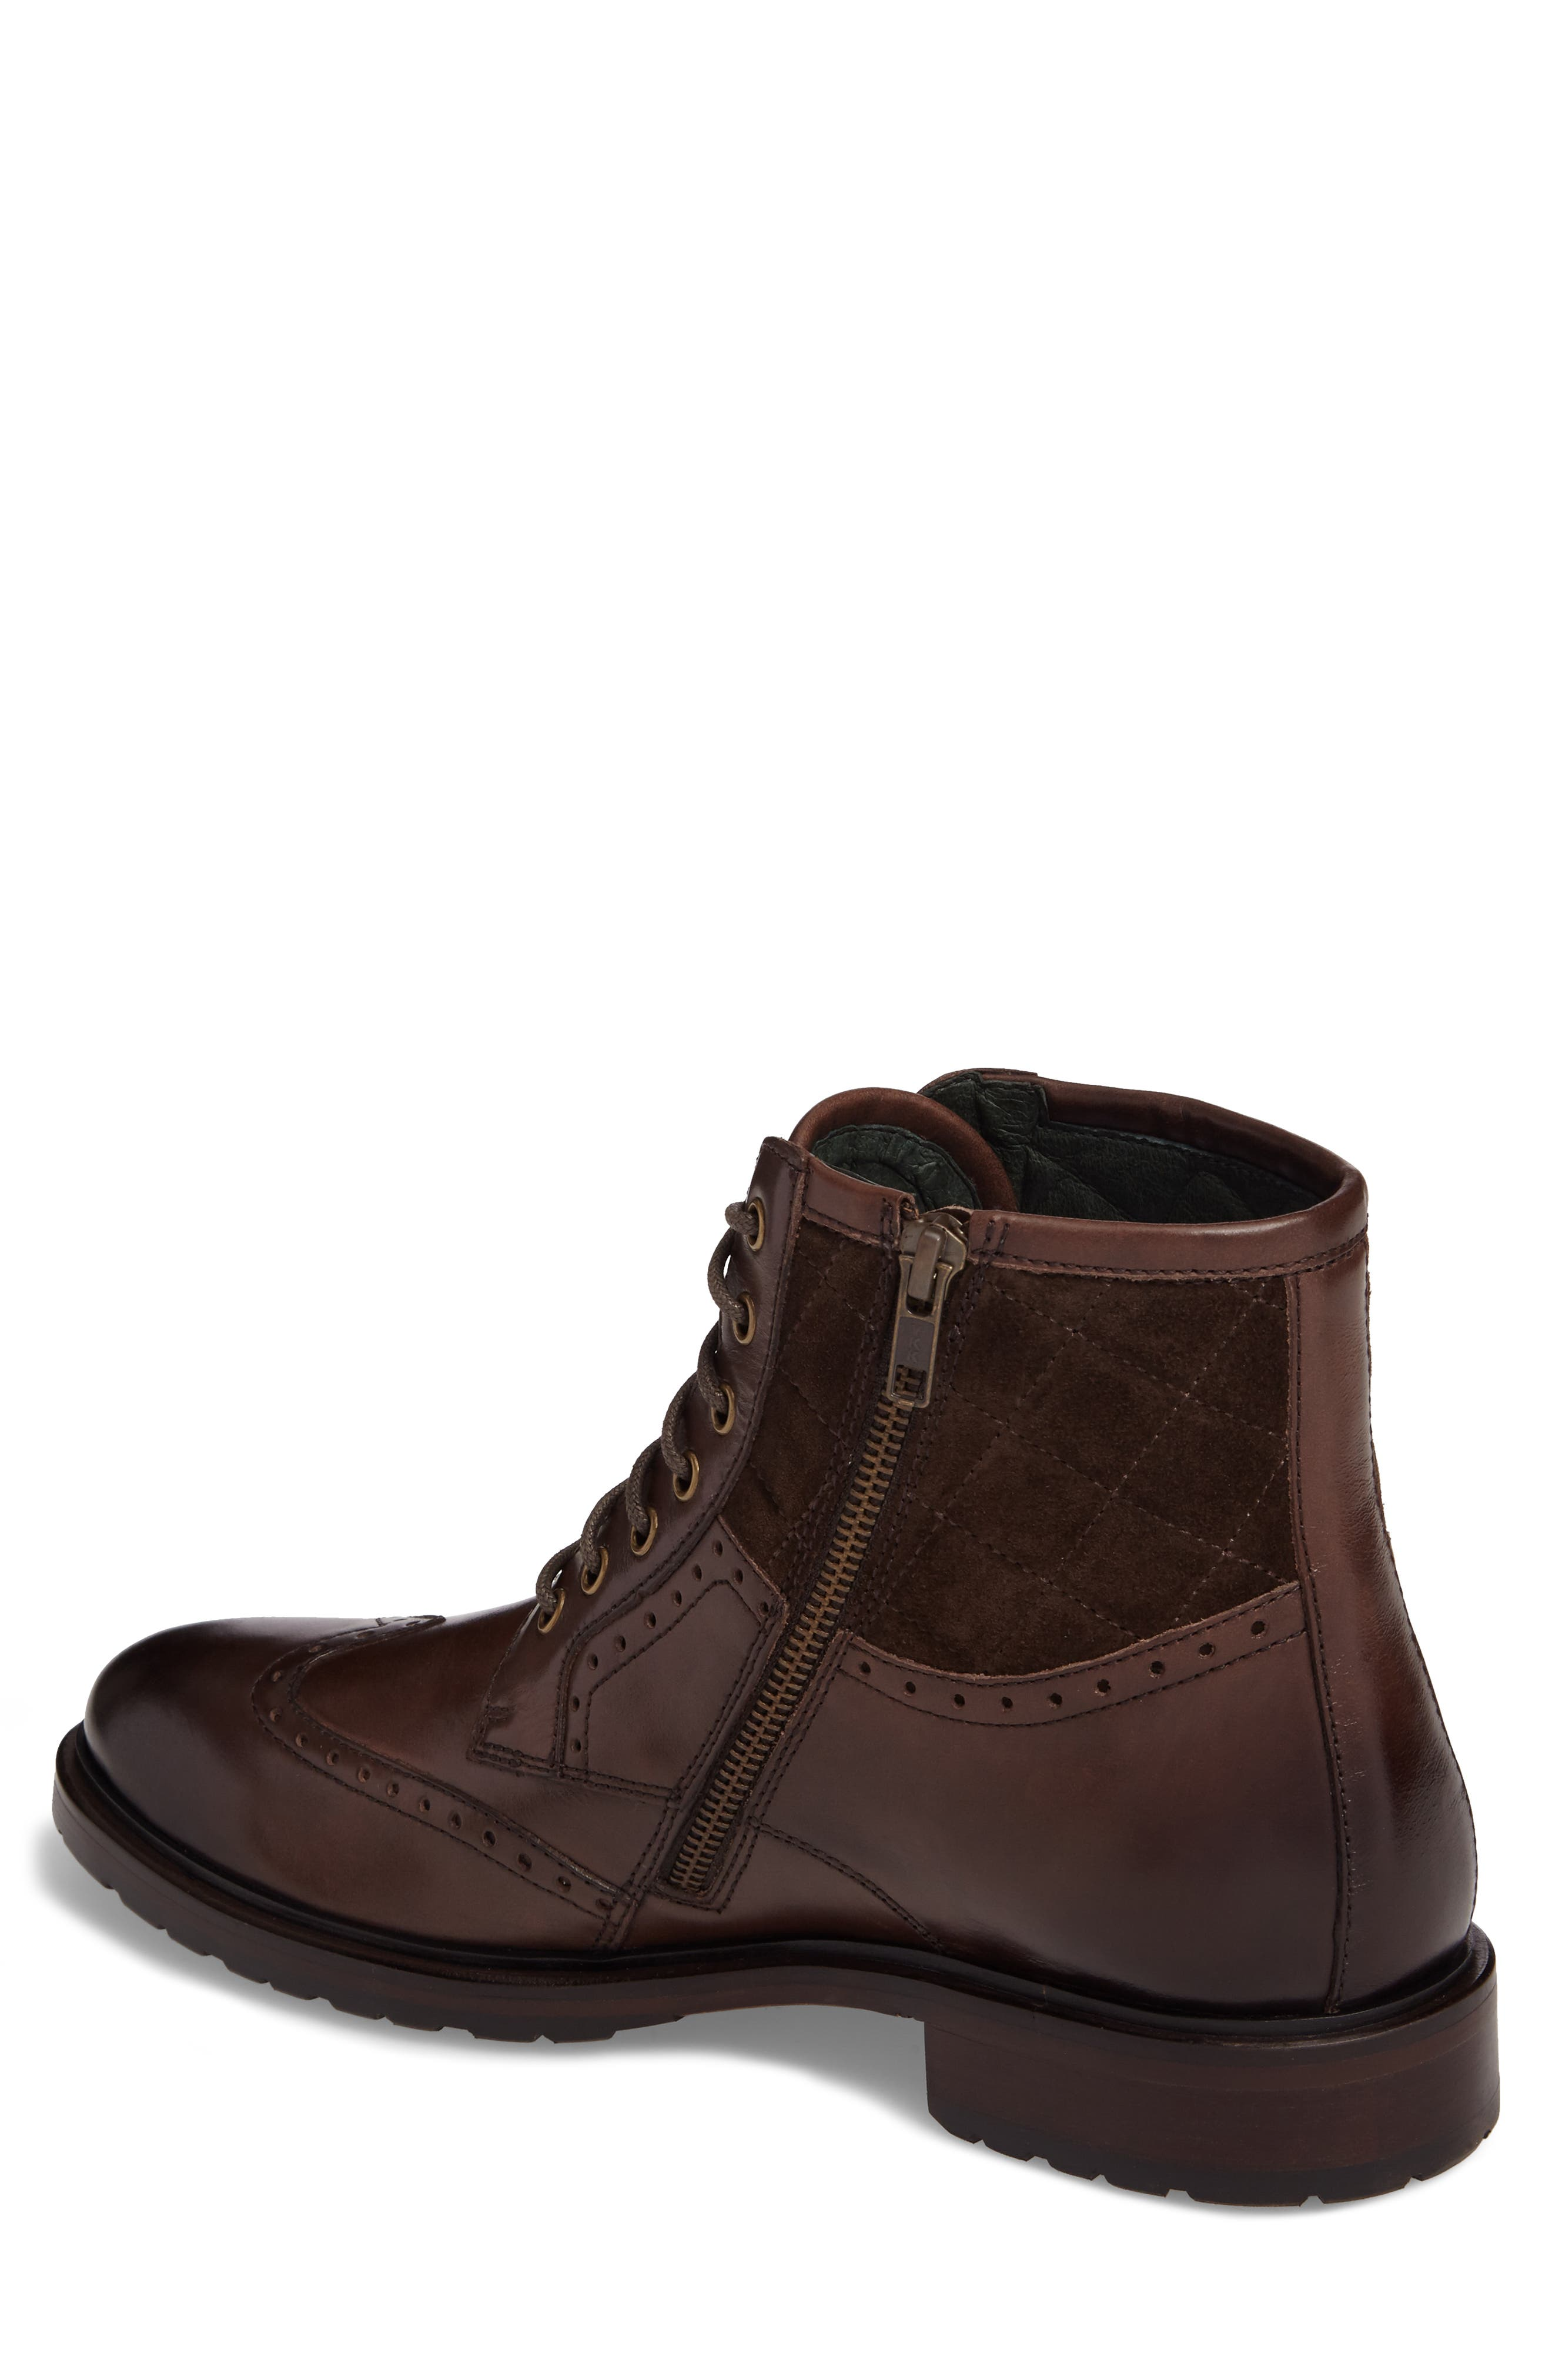 Myles Wingtip Boot,                             Alternate thumbnail 2, color,                             206